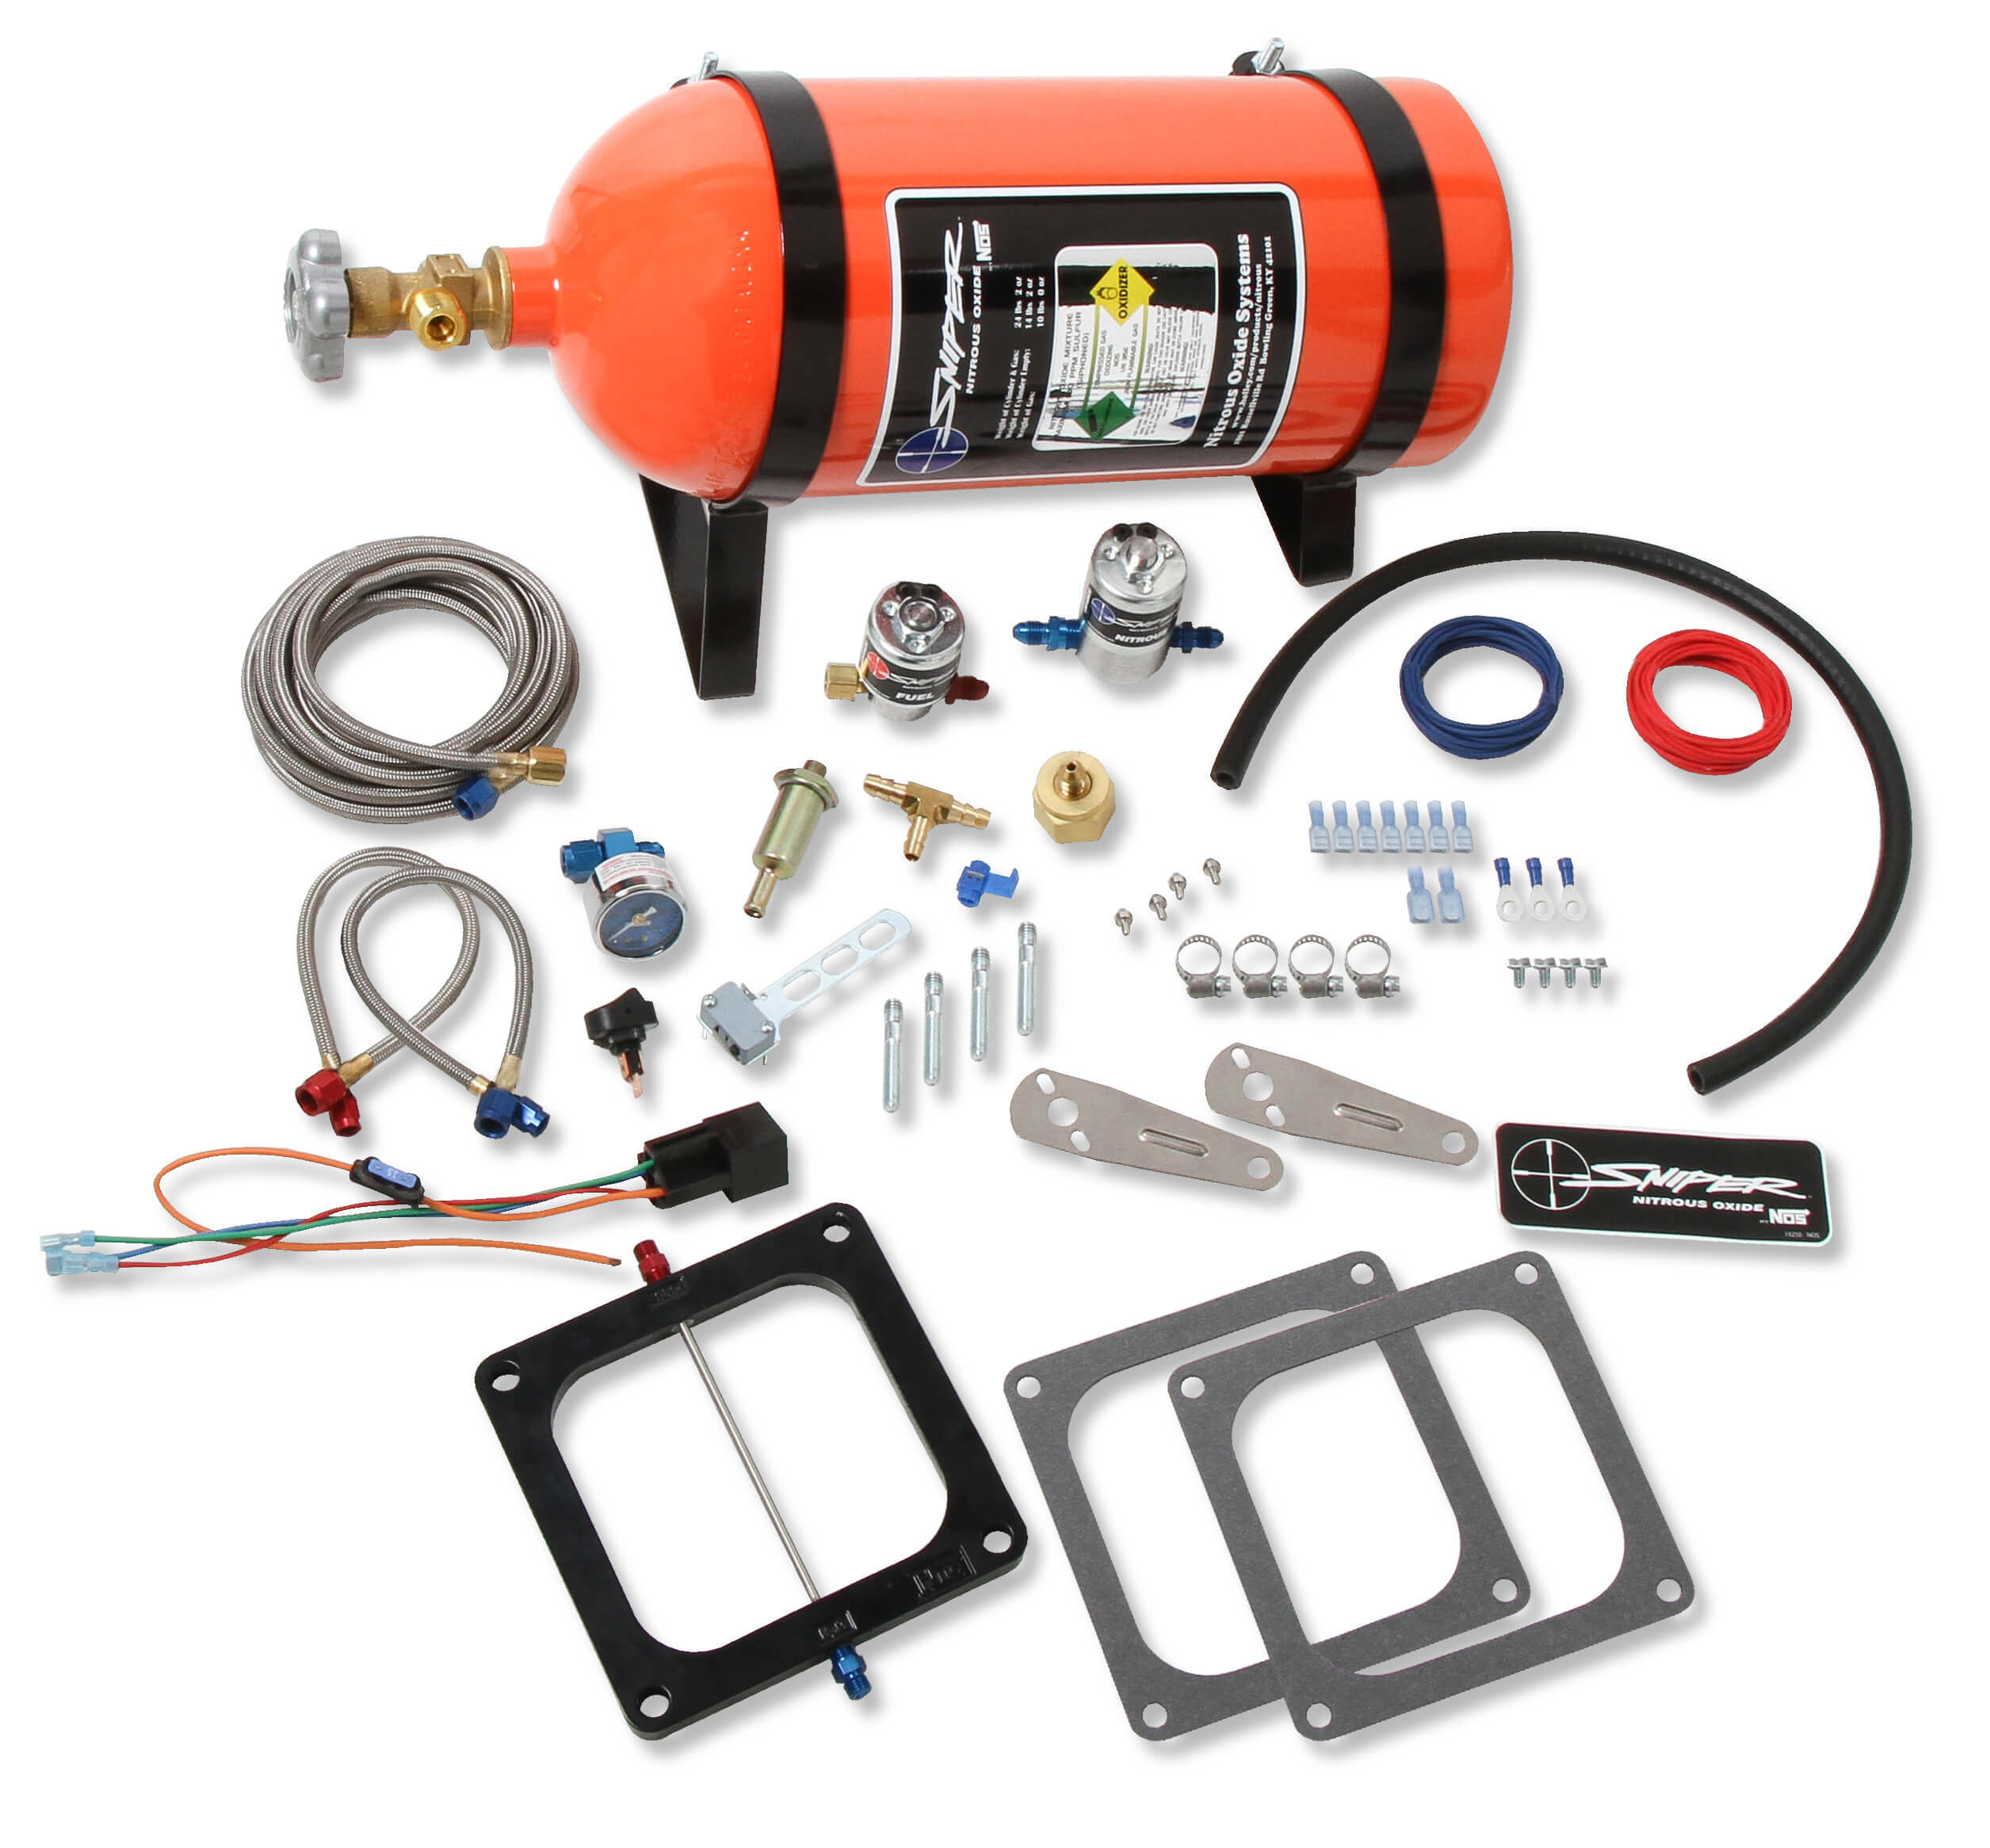 Bottle Nitrous Express 90006-10 200-600 HP 8-Cylinder Gasoline Shark Direct Port System with 4 Solenoids and 10 lbs